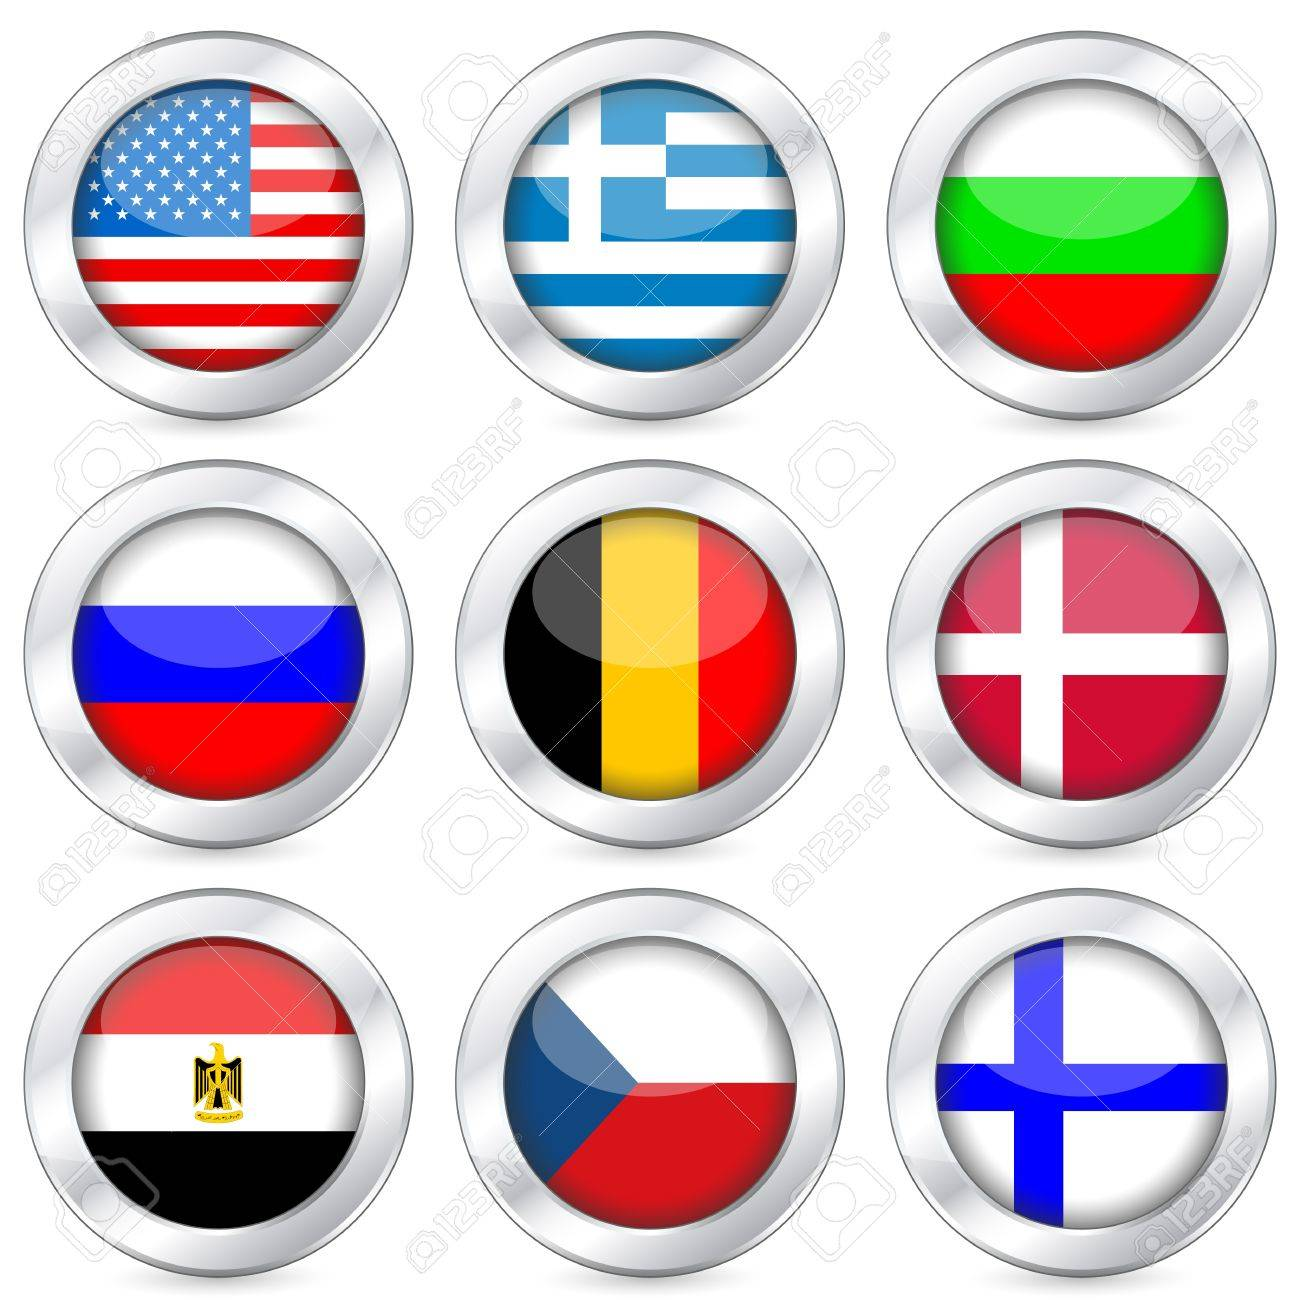 National flag button set on a white background. Vector illustration. Stock Vector - 10699372